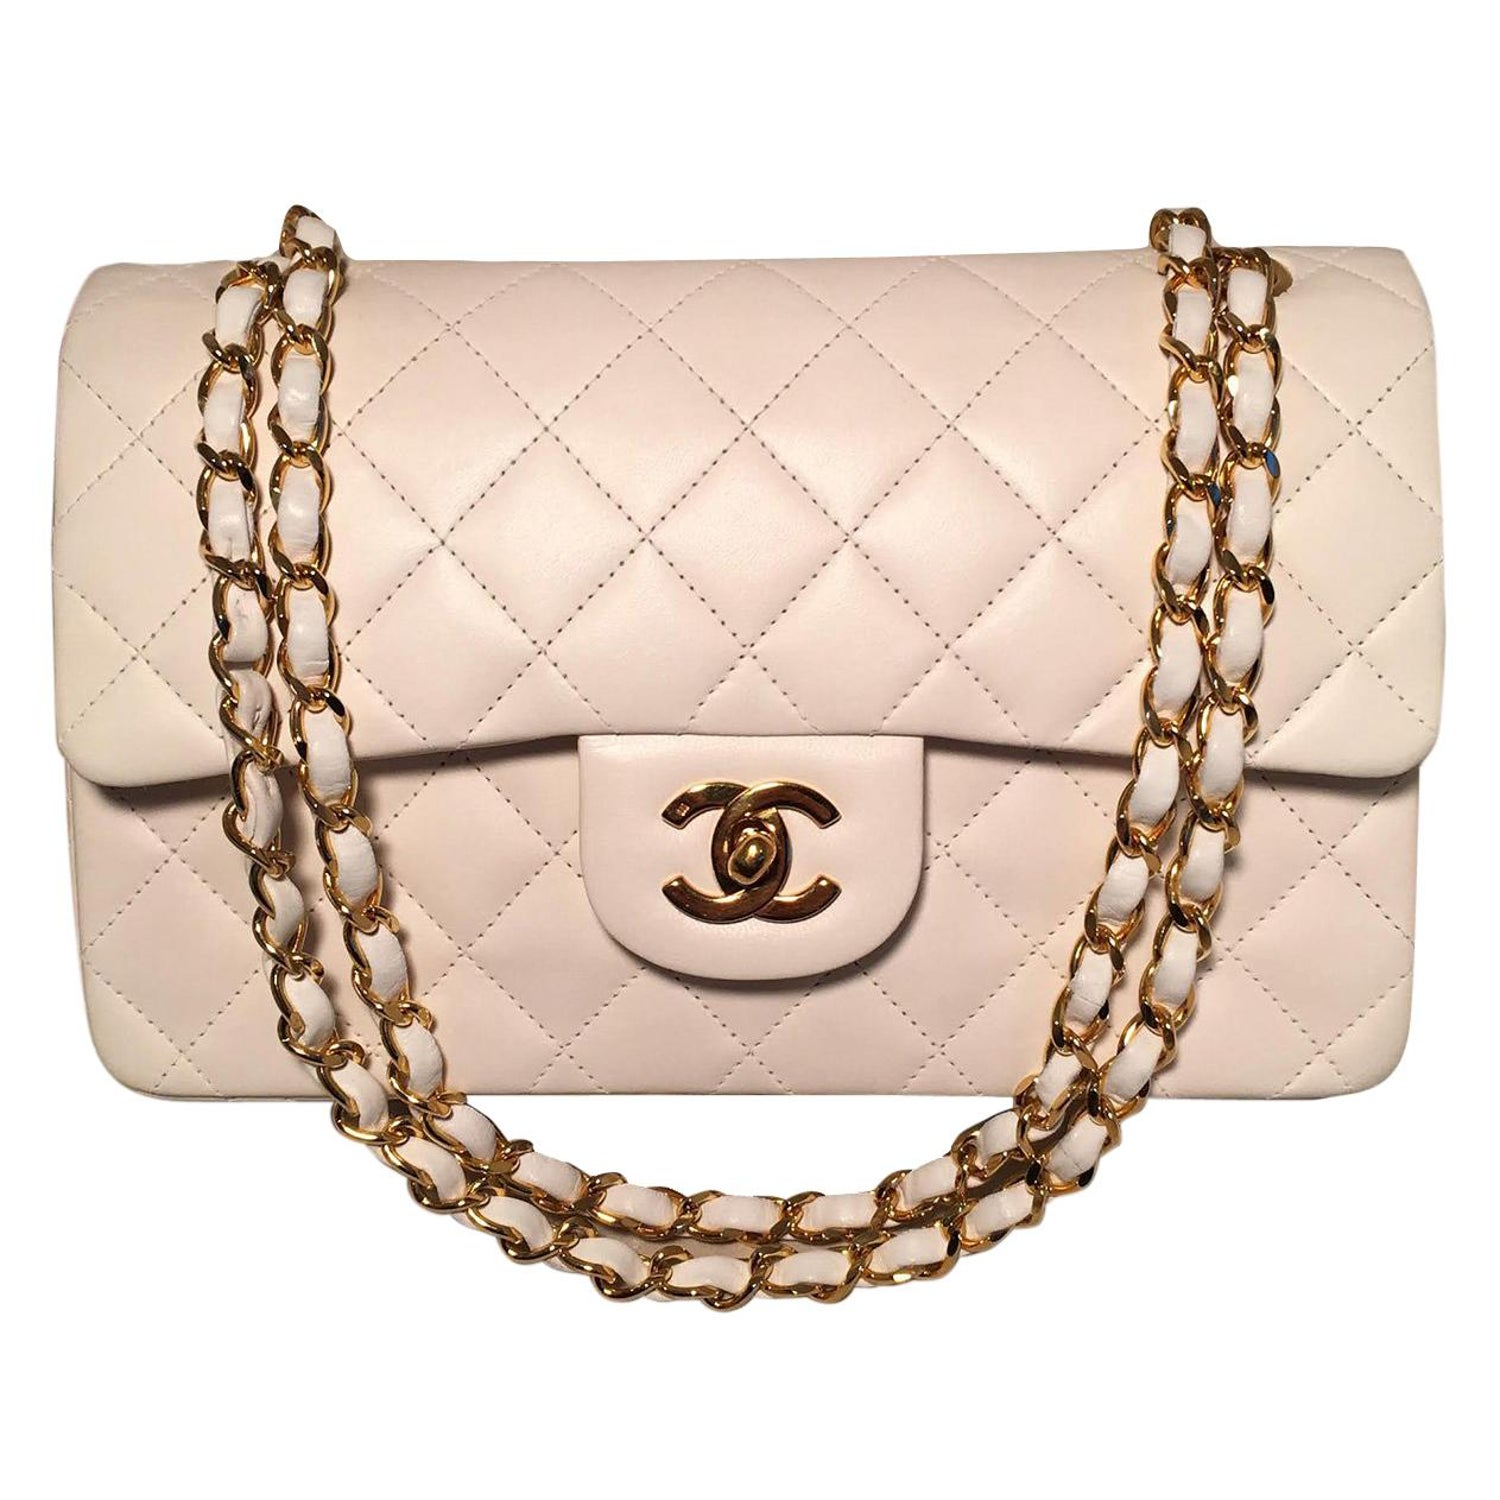 6dac90ddf75b Chanel Vintage White 9 inch 2.55 Double Flap Classic Shoulder Bag For Sale  at 1stdibs